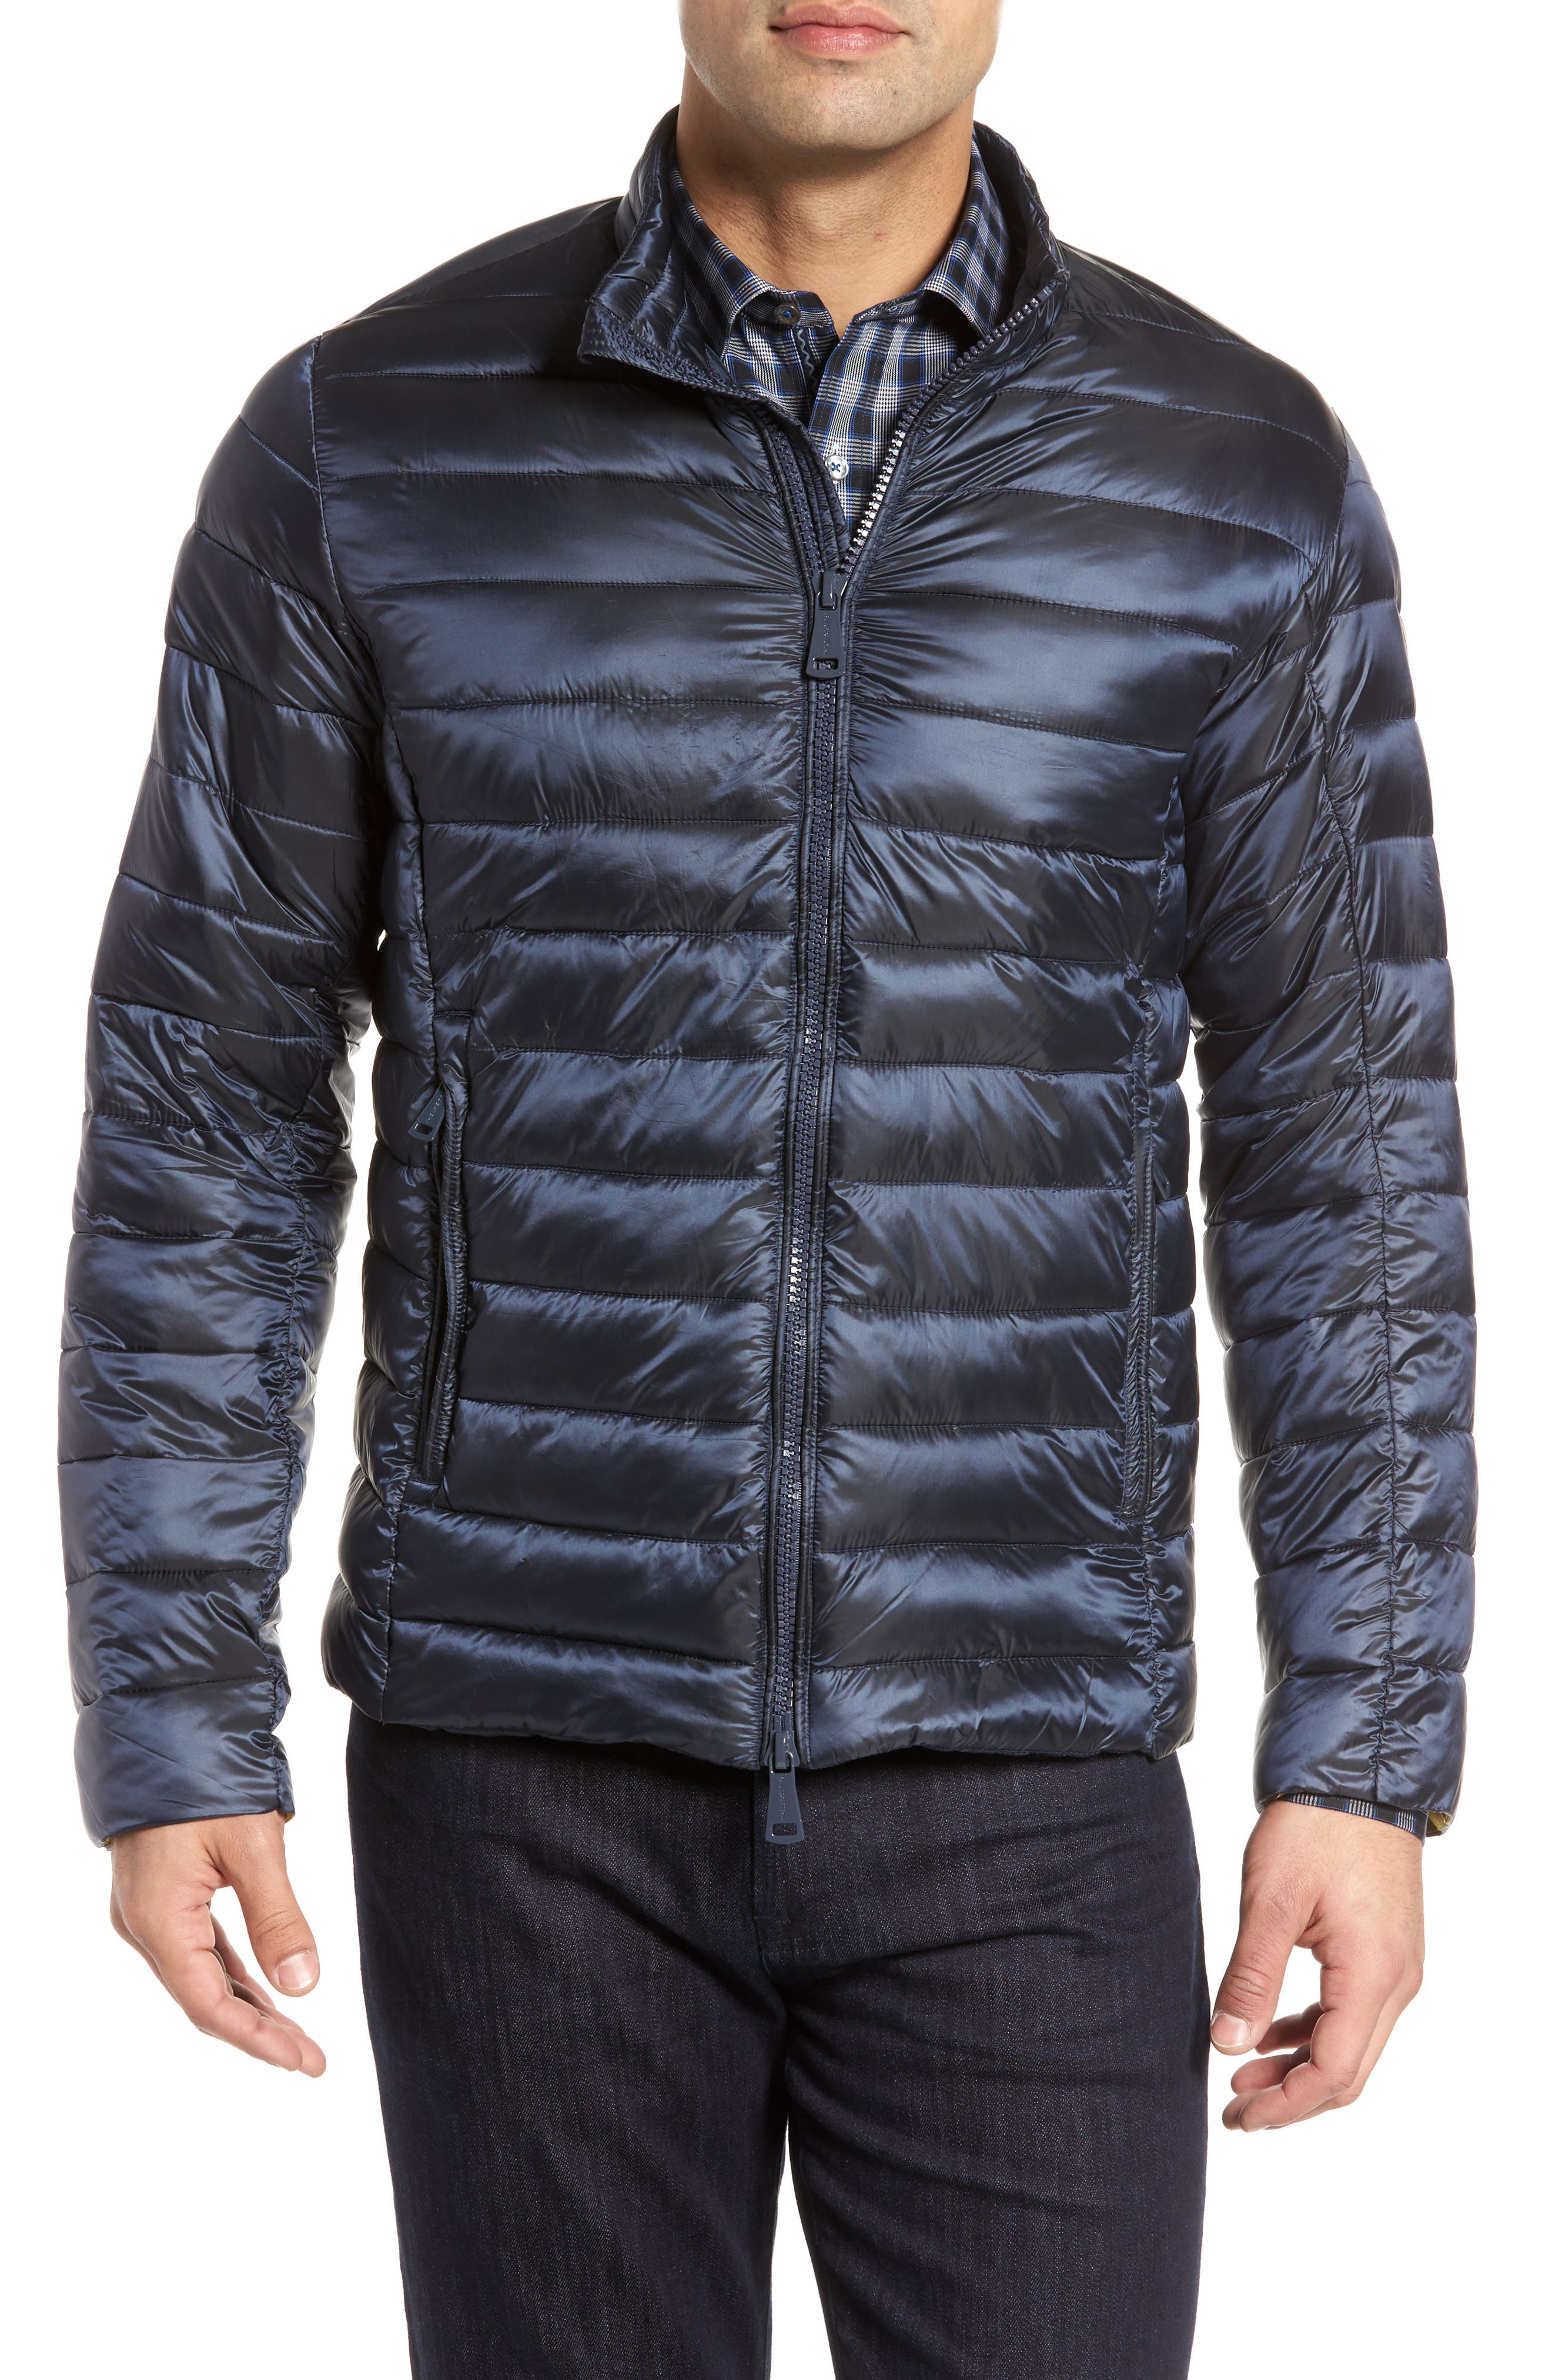 Channel Quilted Jacket,                         Main,                         color, Navy